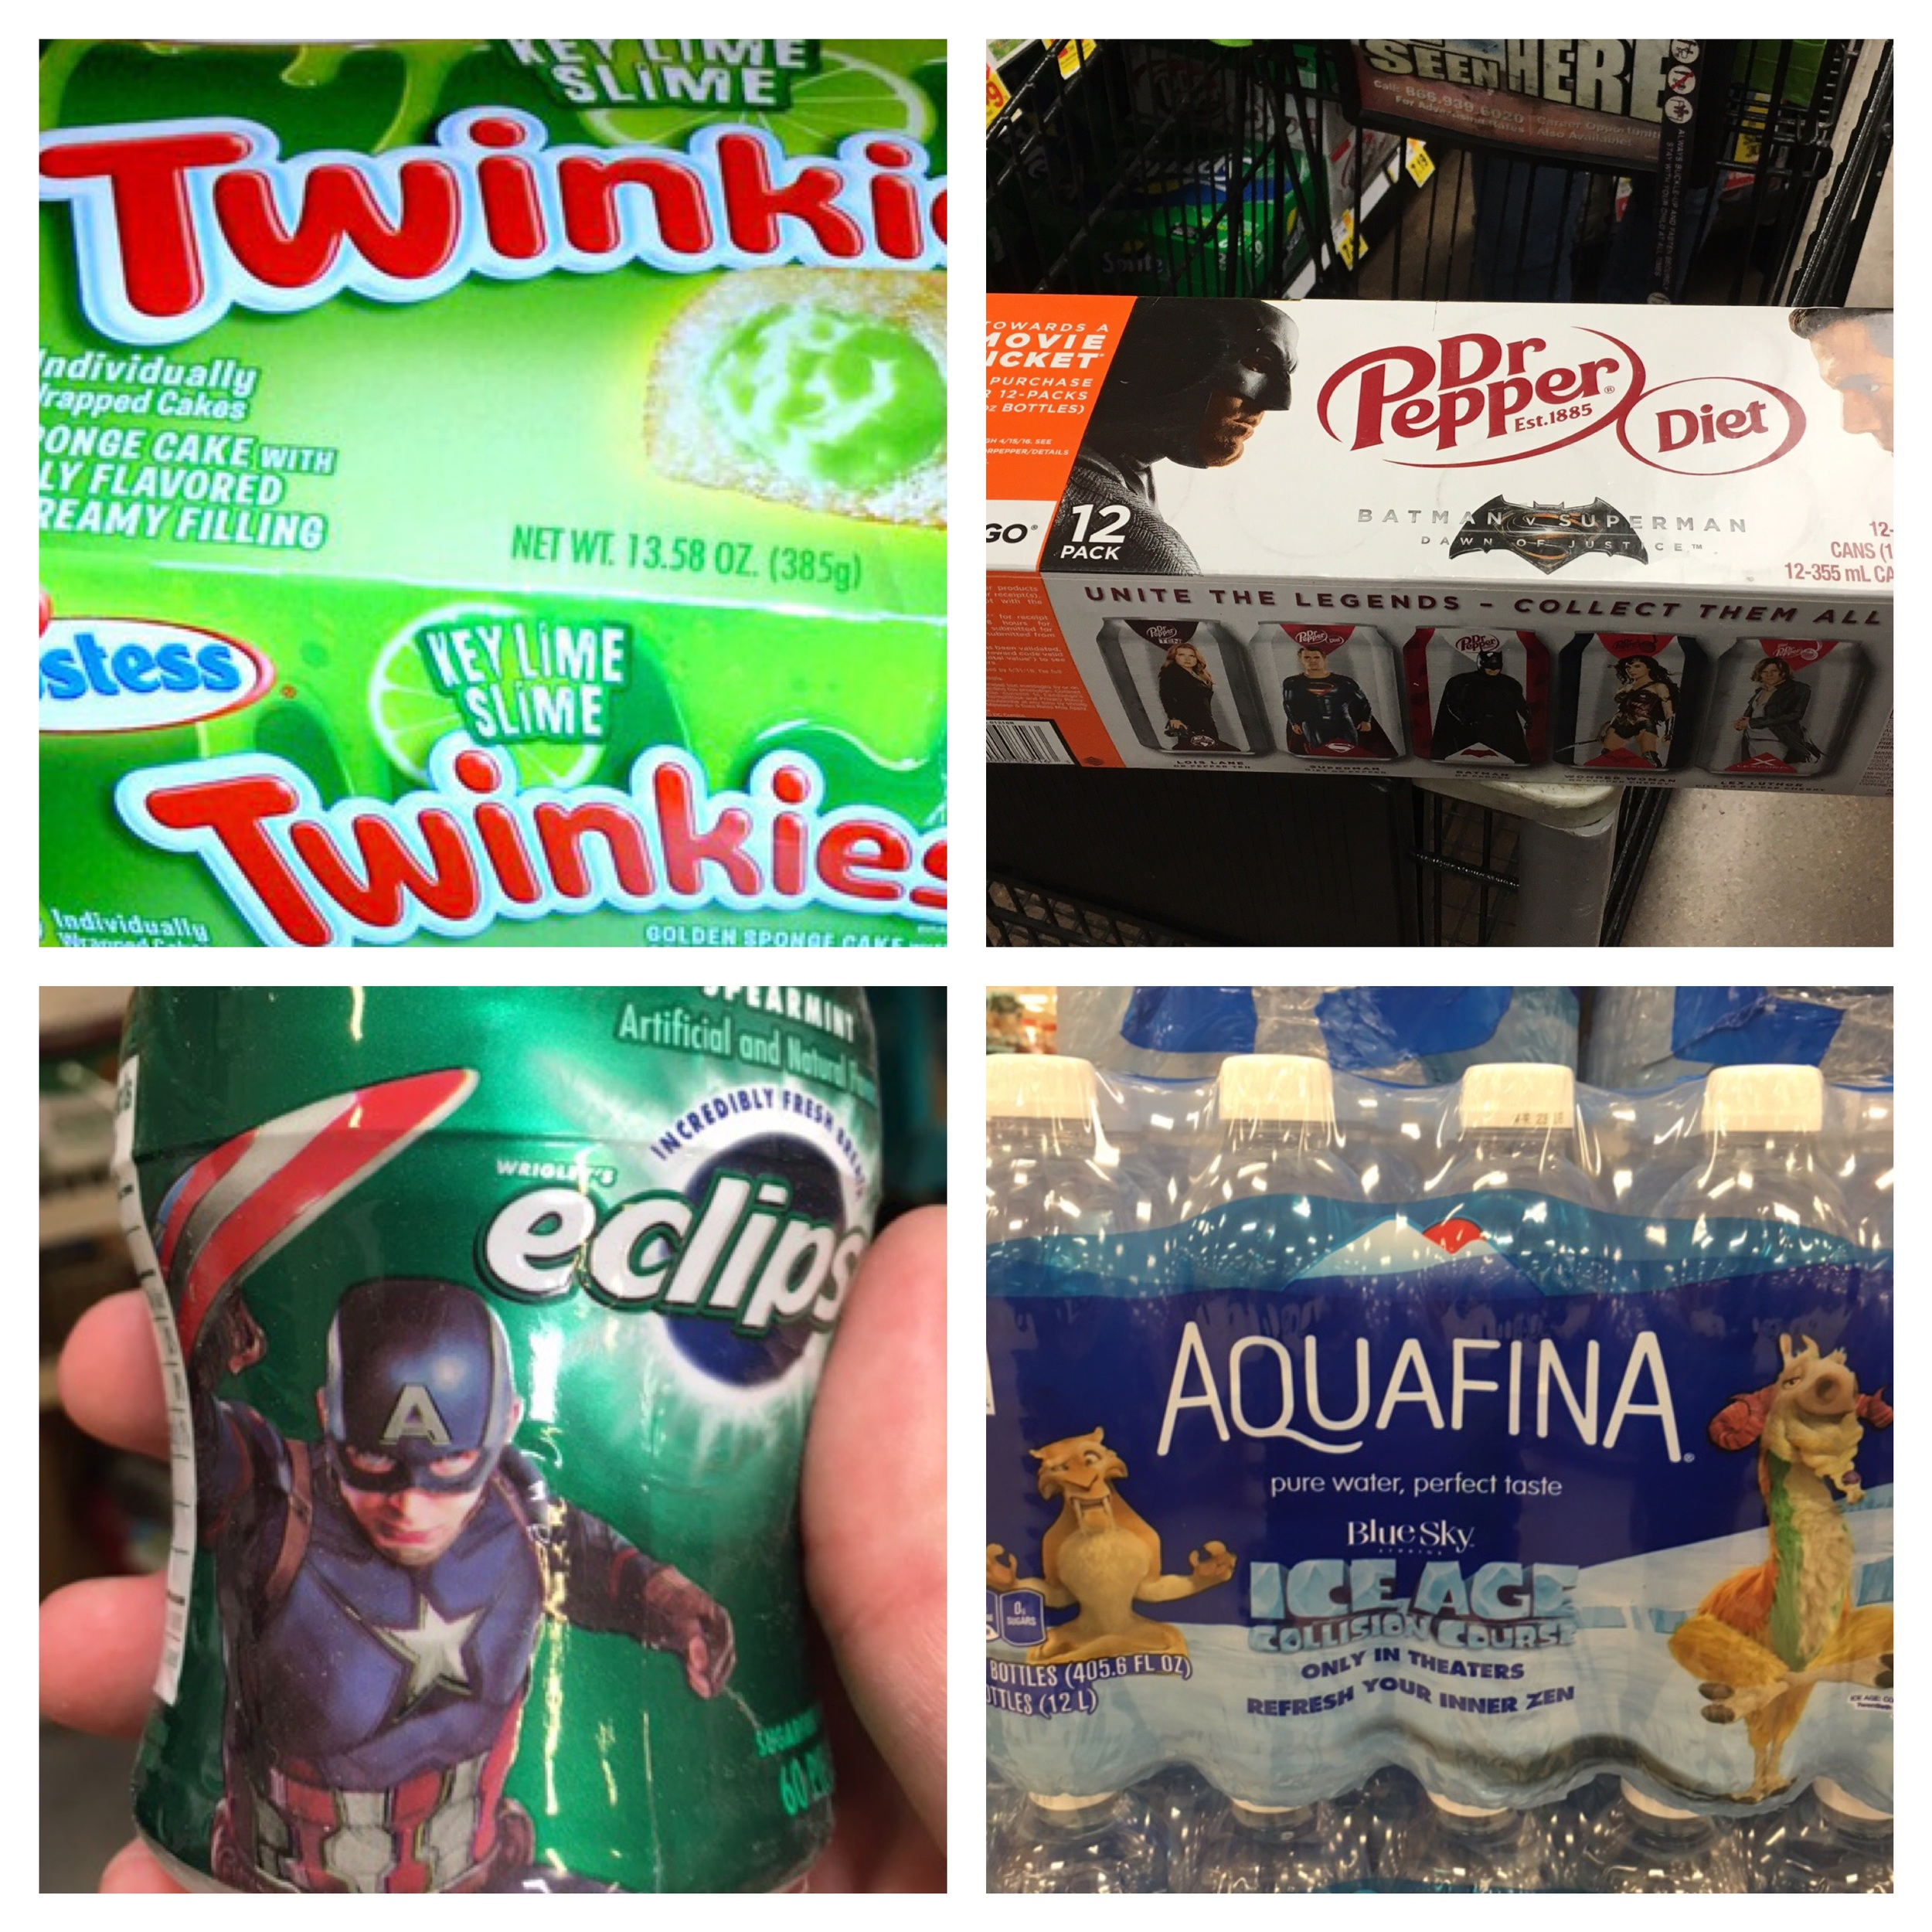 From left to right: Twinkies &  Ghostbusters , Dr. Pepper &  Batman v. Superman , Eclipse Gum &  Captain America: Civil War  and Aquafina &  Ice Age: Collision Course.